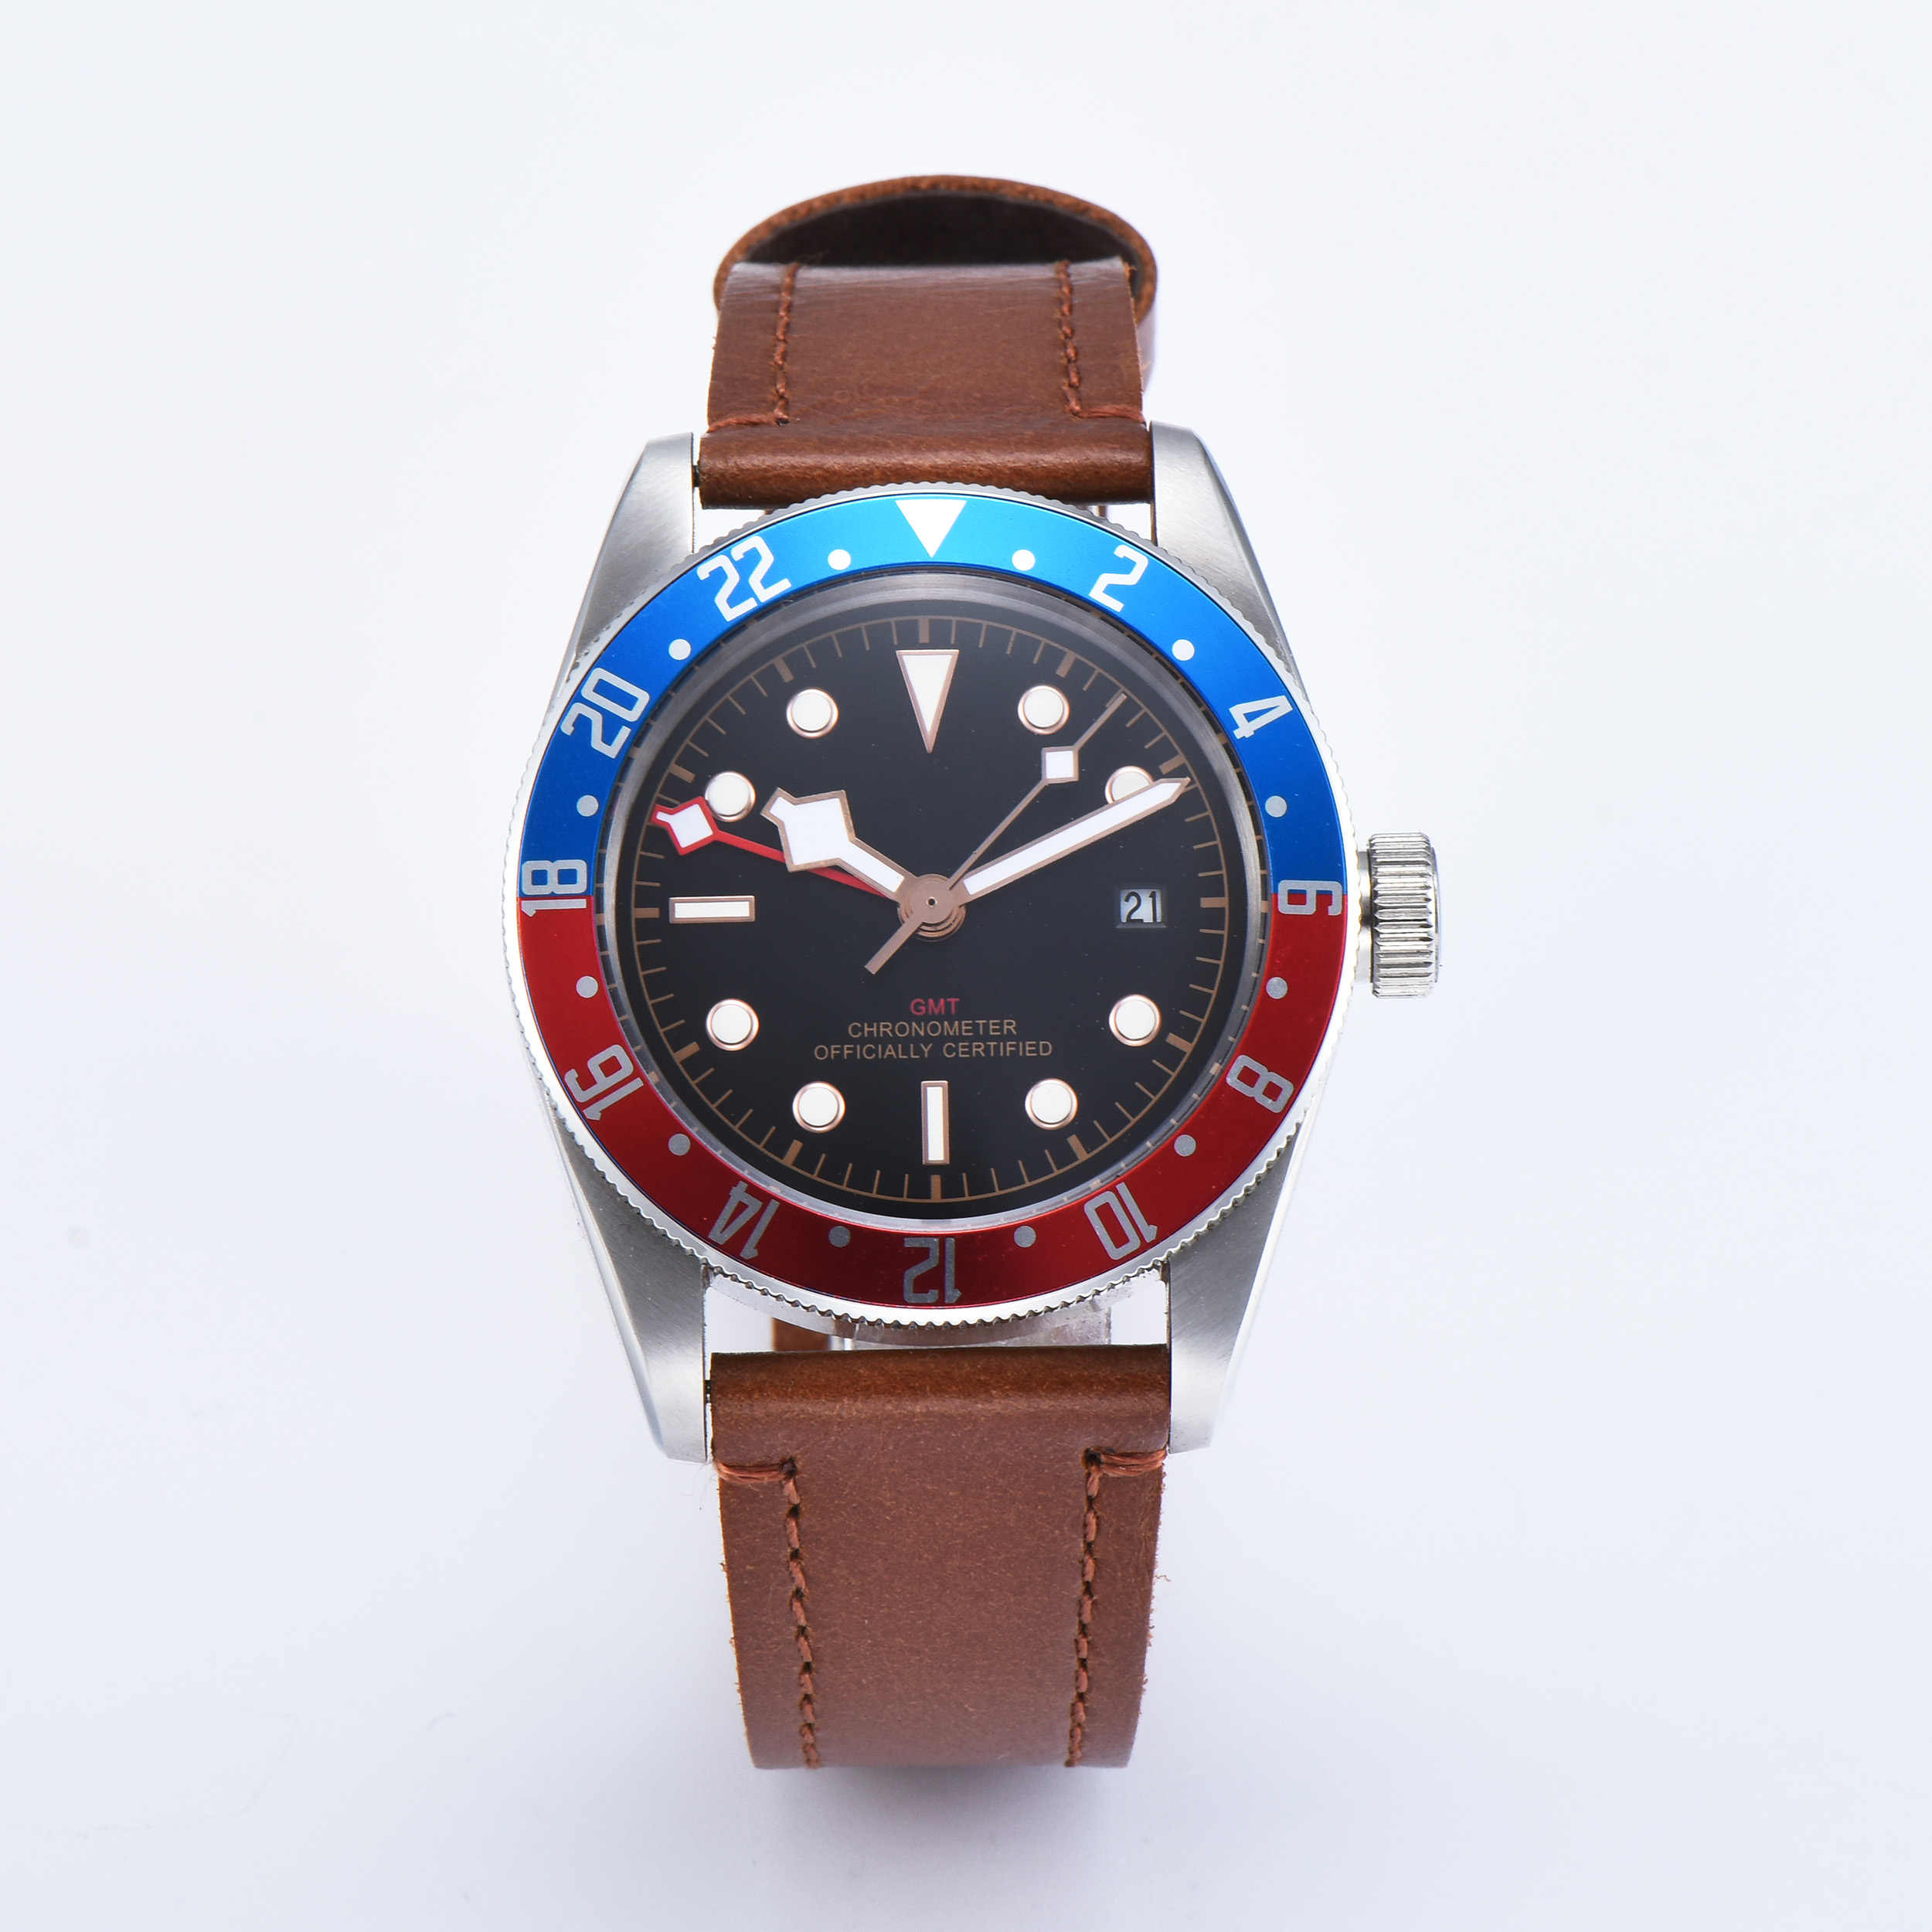 Corgeut 41mm GMT Watch Black Dial Bay Black&Red Bezel Leather Mechanical Automatic men Watches